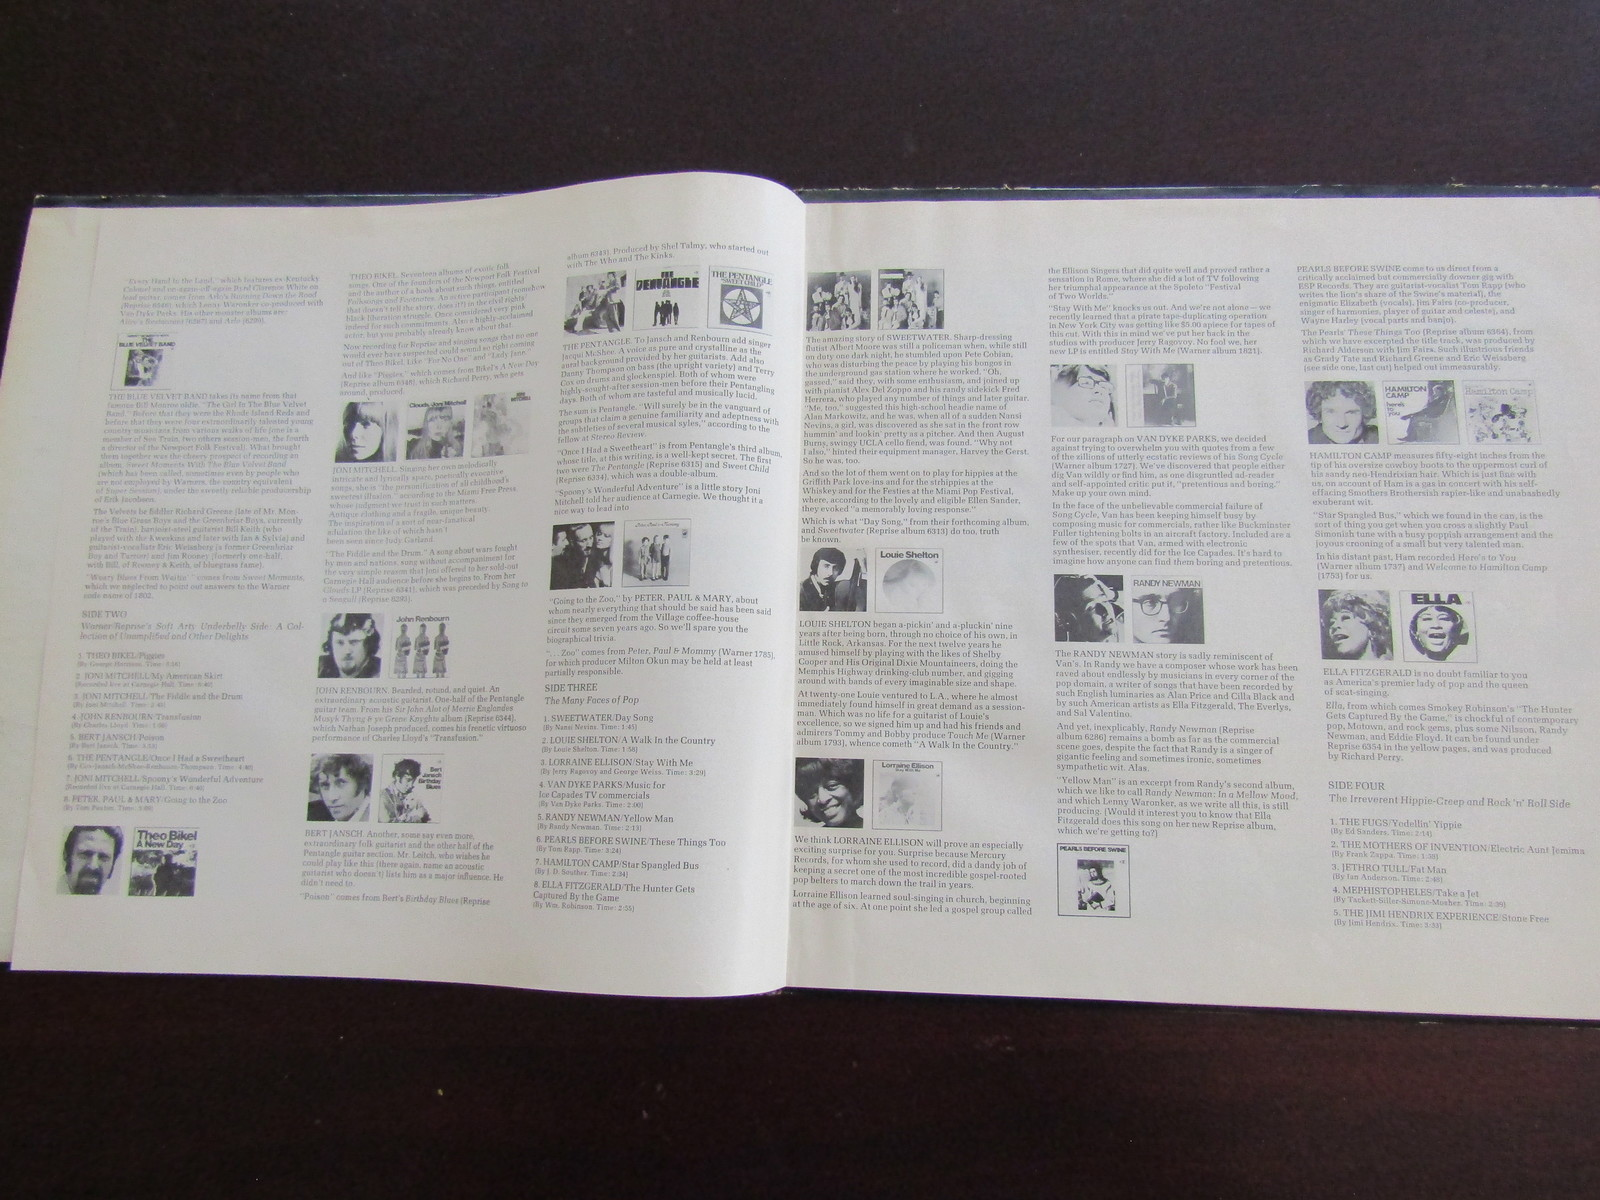 1969 warner-reprise record show LP record various artists VG+